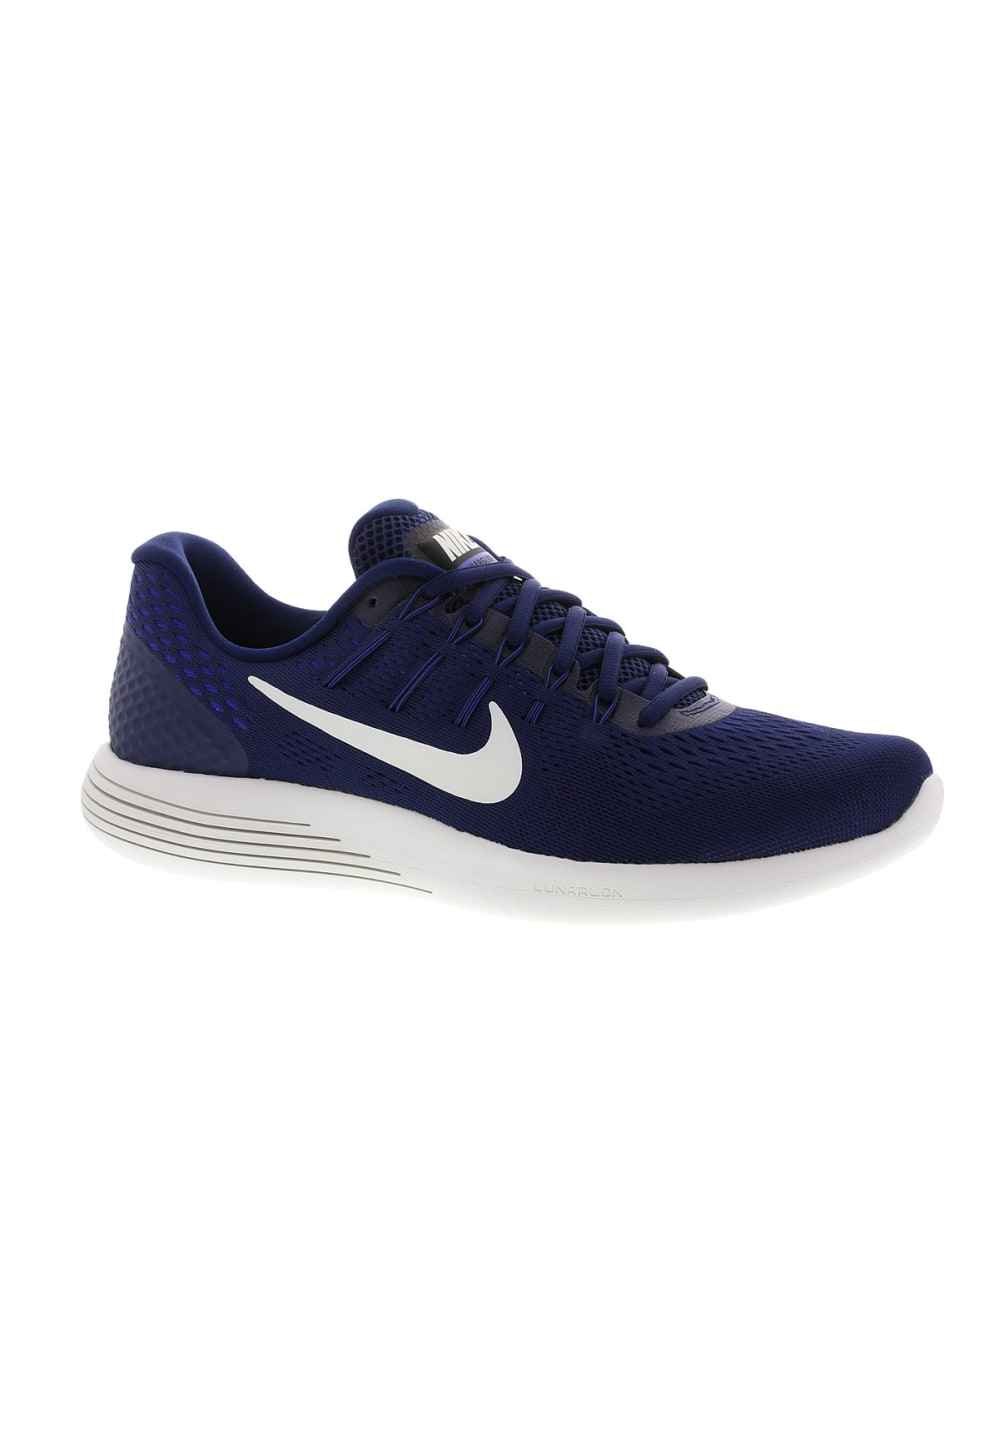 outlet store 4f18b a1459 Nike Lunarglide 8 - Running shoes for Men - Blue